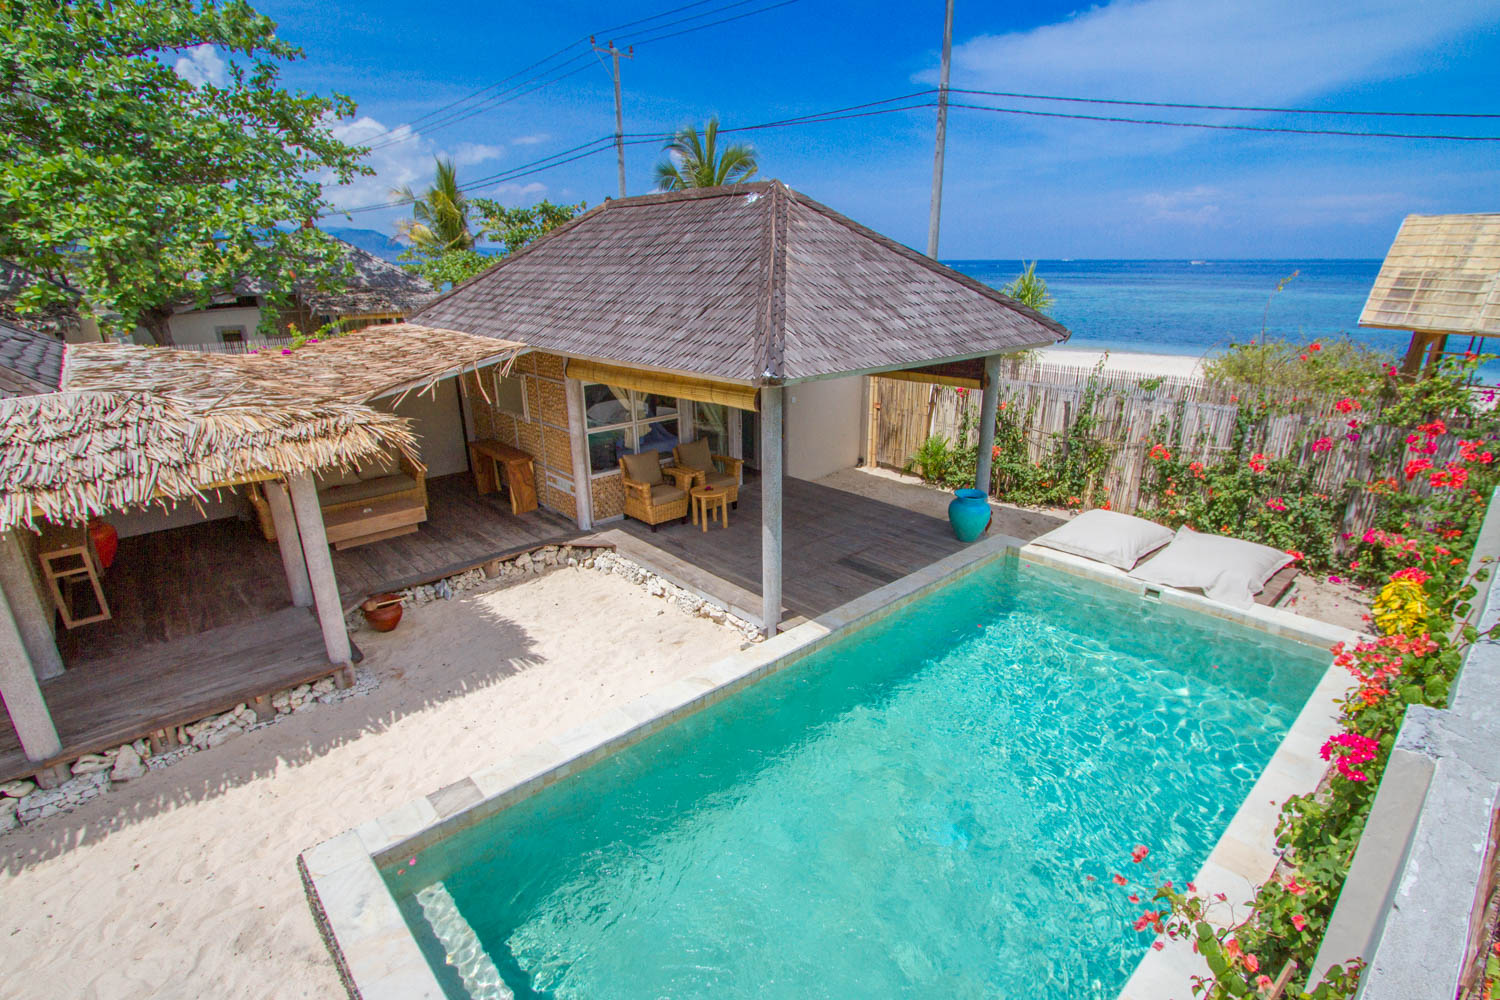 Beachfront 2 Bedrooms villa with pool and garden - Avia Villa Resort Gili Meno